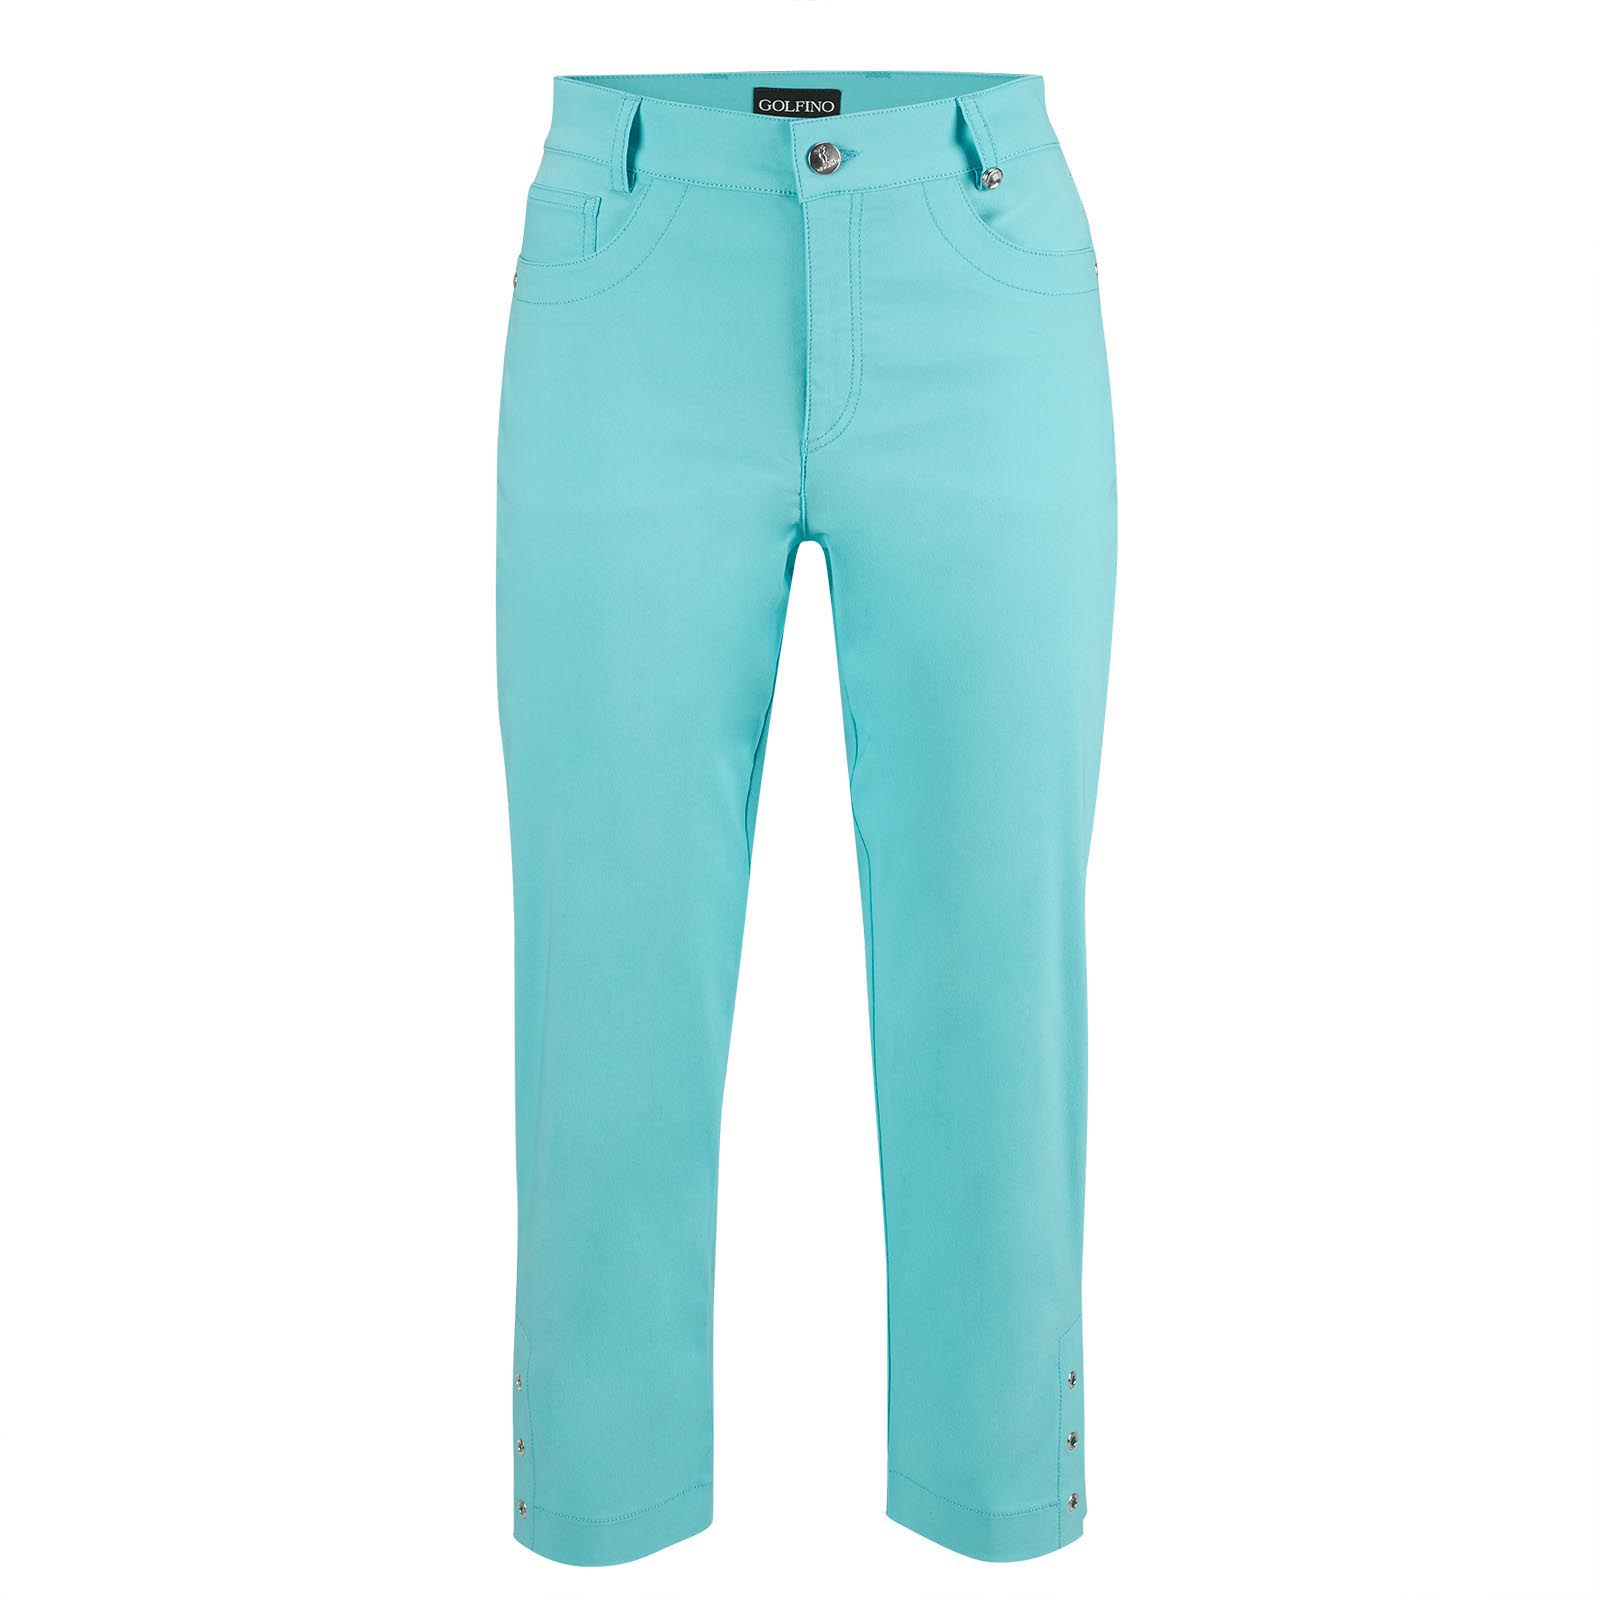 Cotton-Blend Damen Stretch-Caprihose mit UV Protection